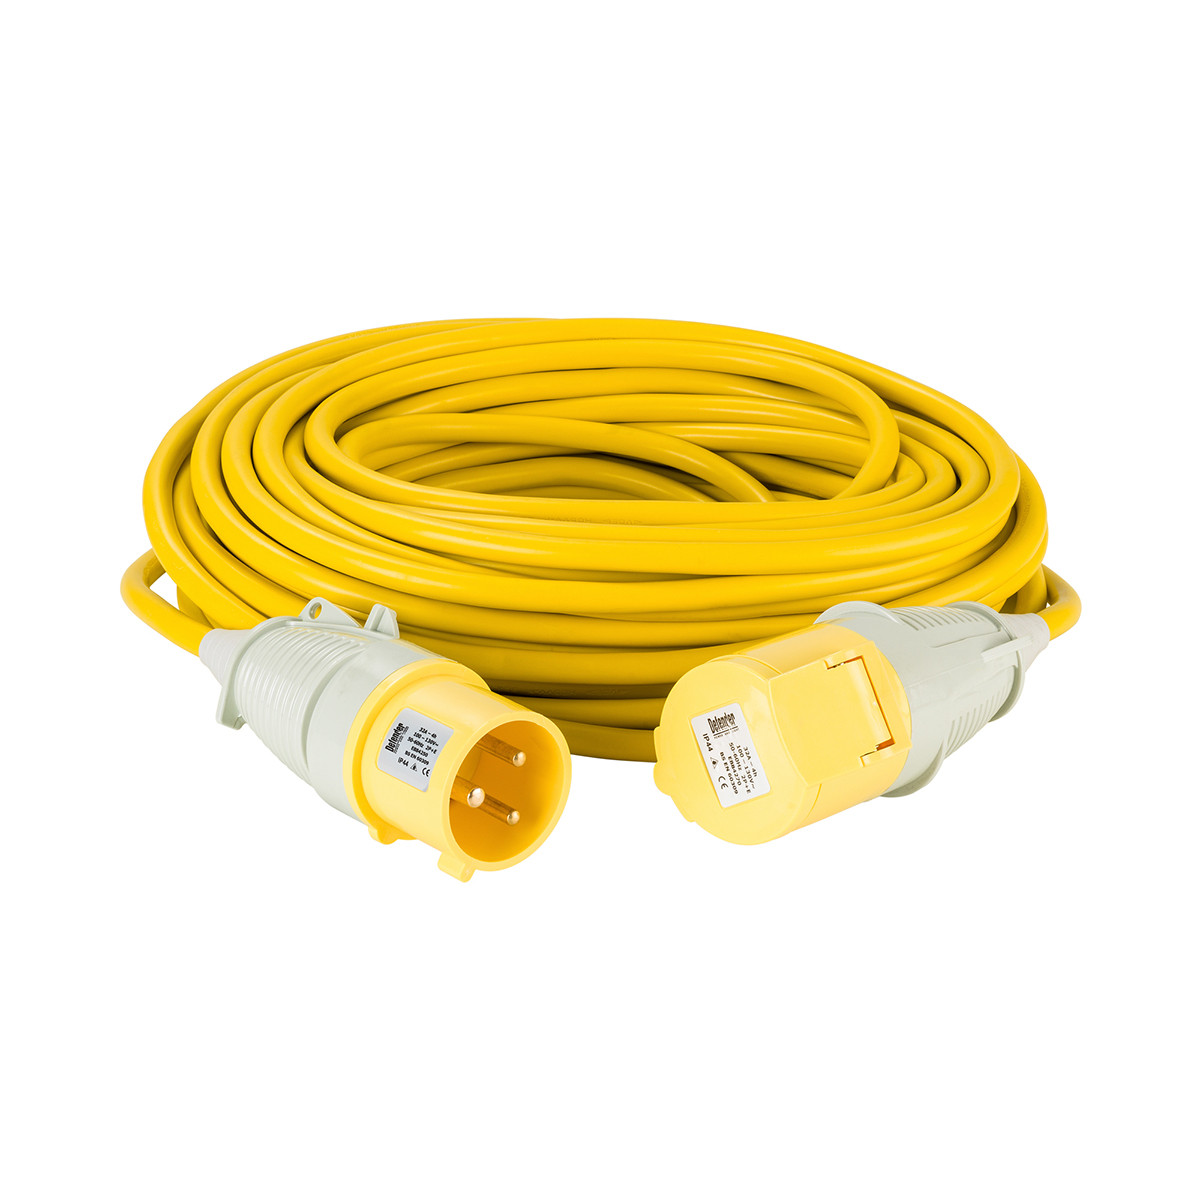 25M 4.0MM Extension Lead 110V 32A IP44